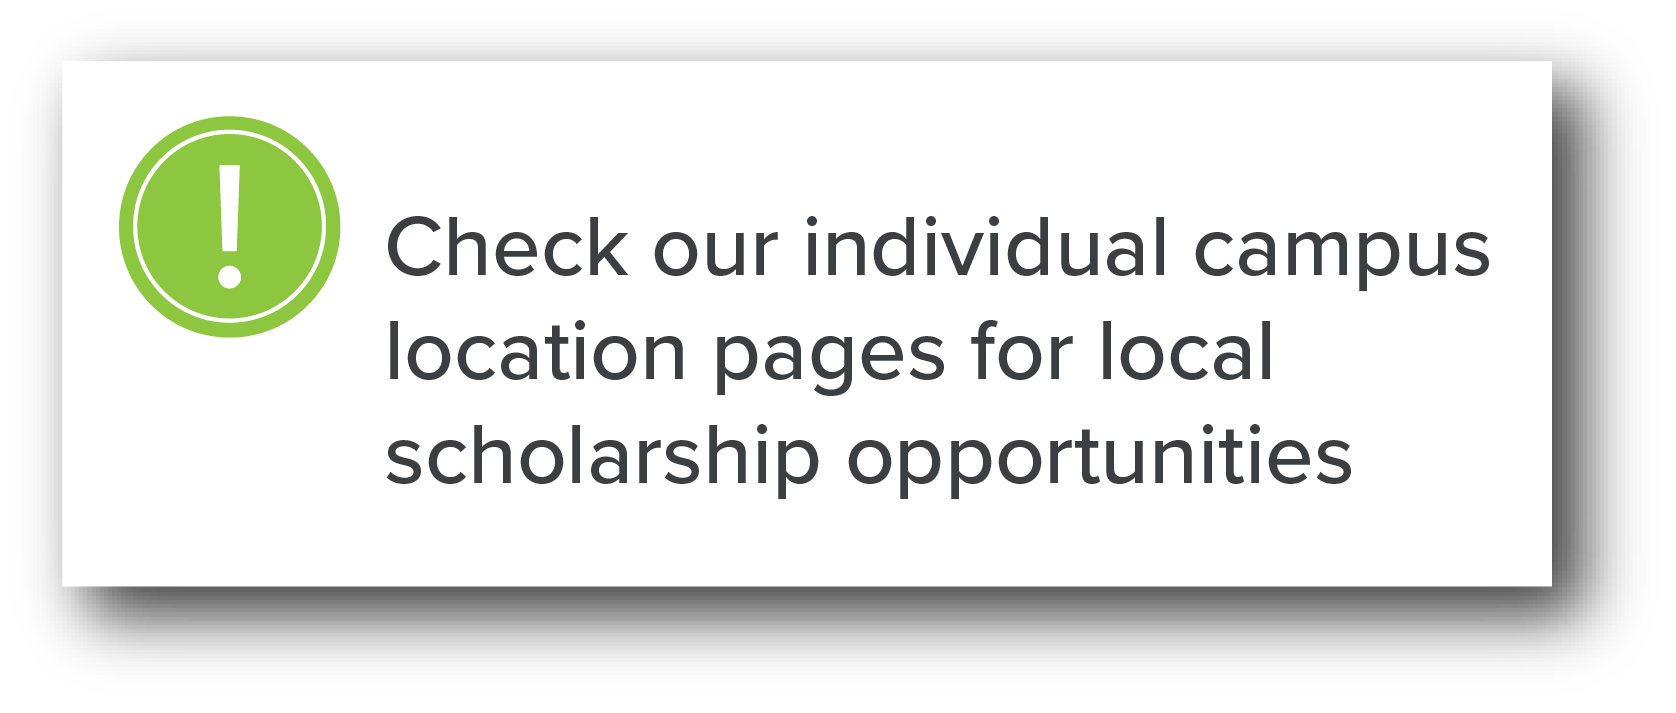 Campus_Scholarships_Image-01.png